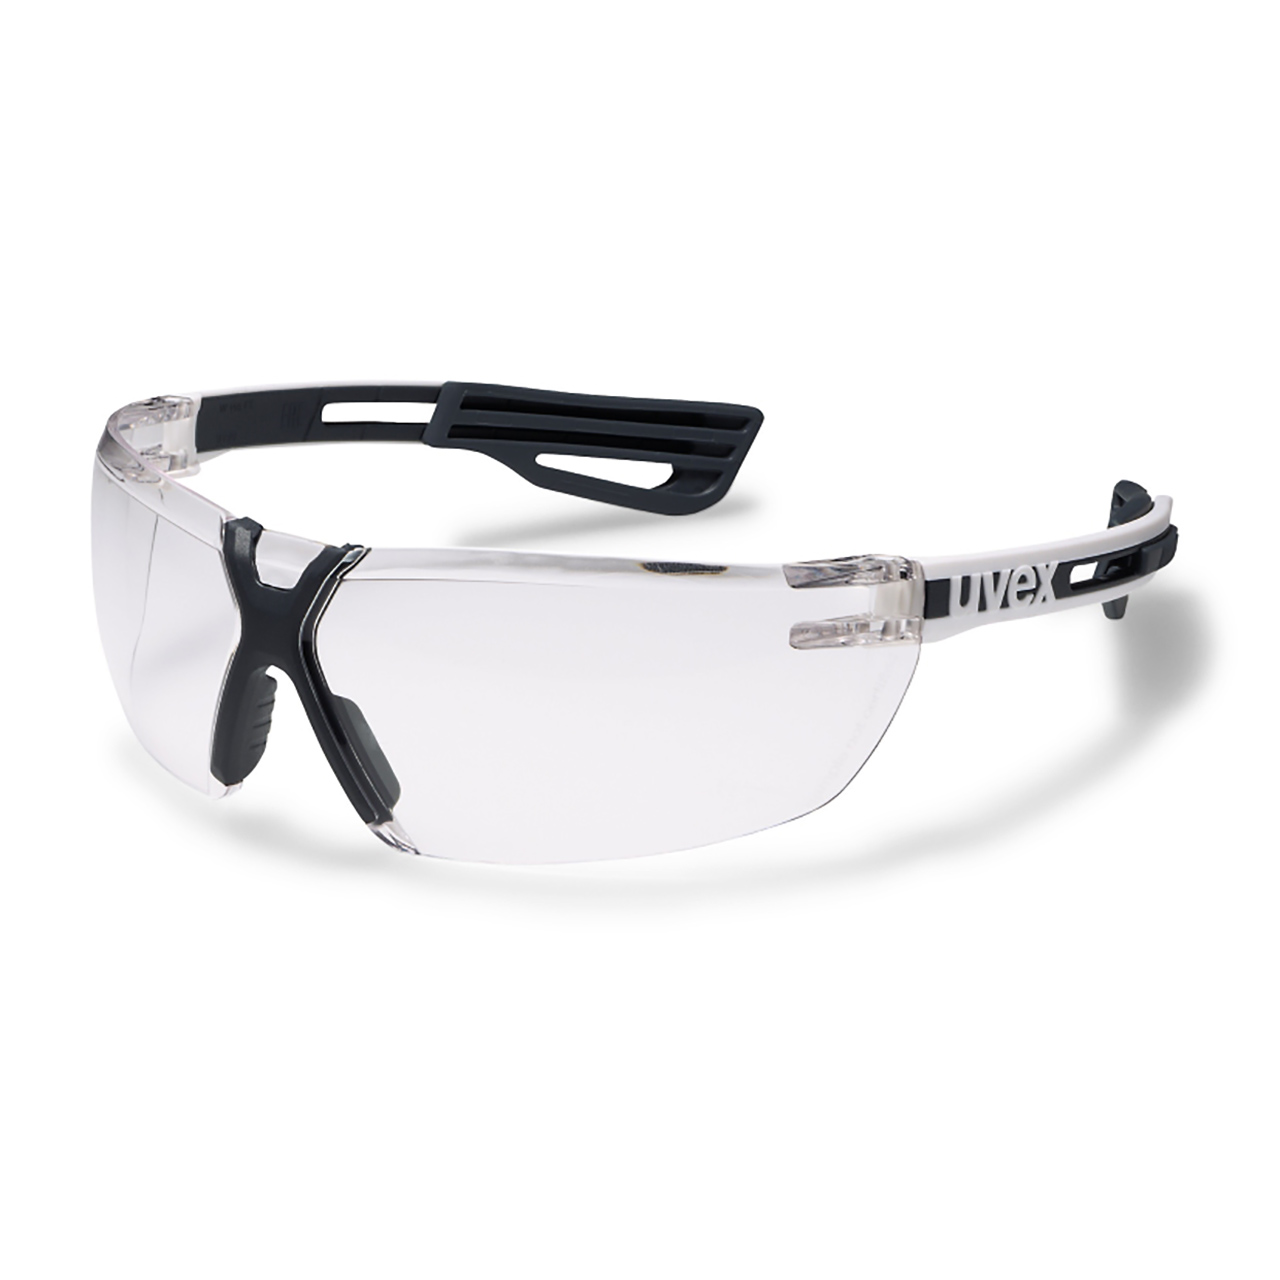 25a4b4eaf6f uvex Safety Glasses